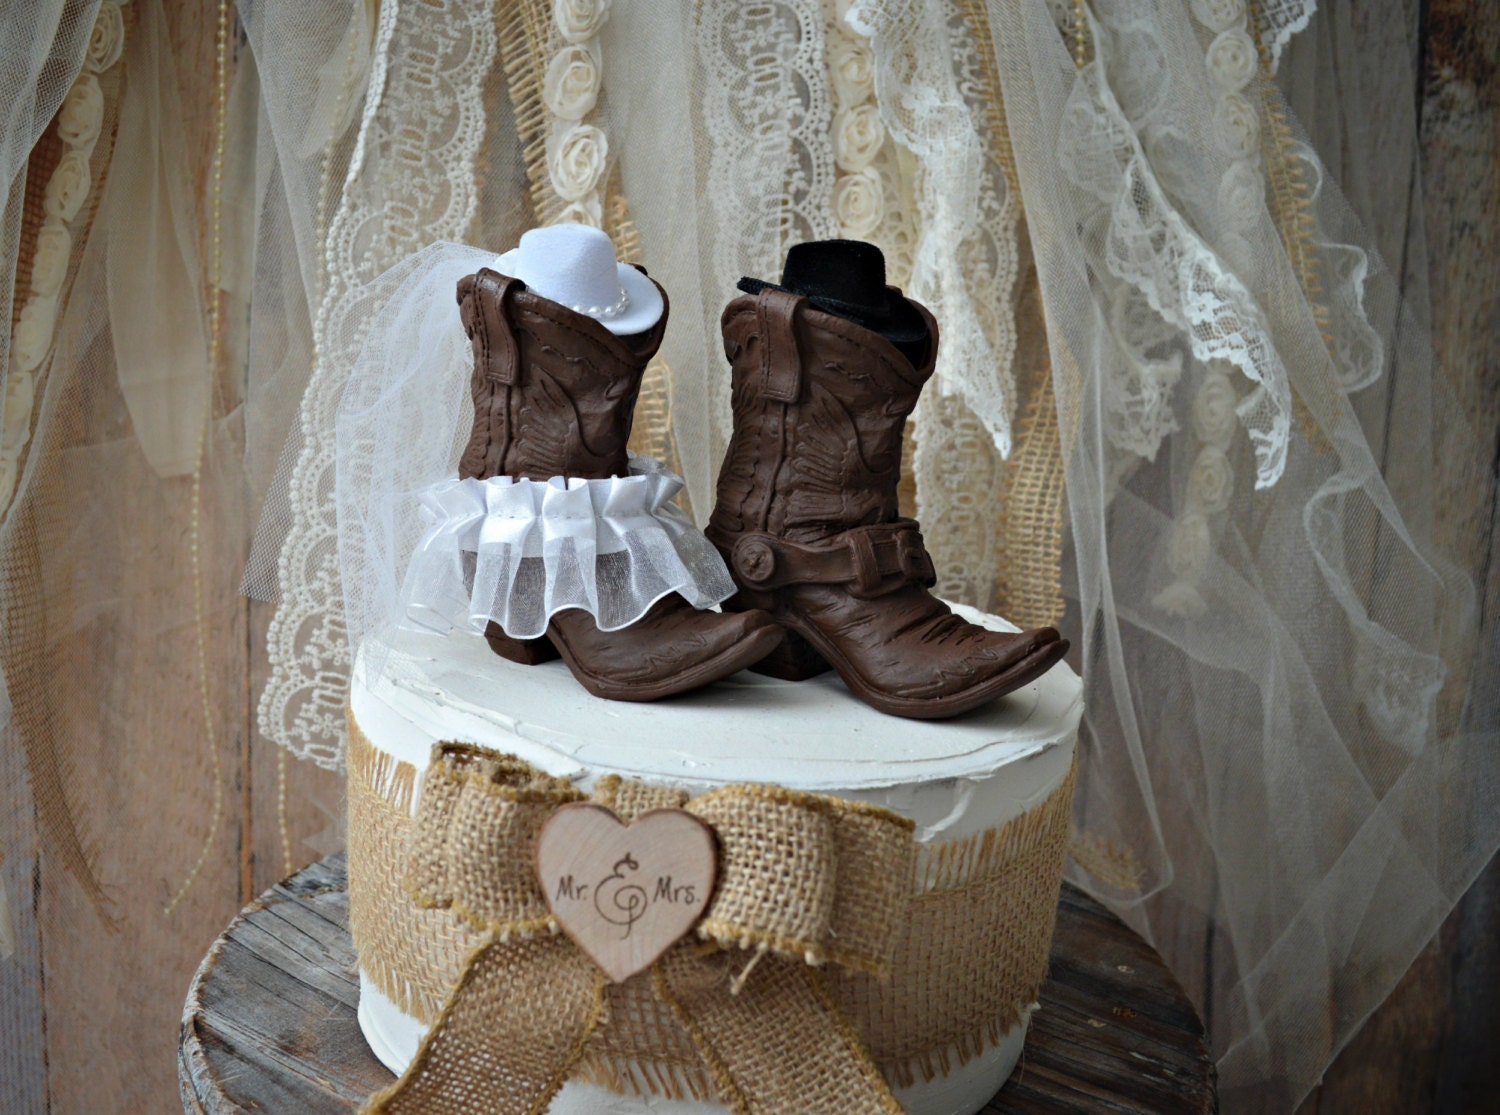 His And Hers Western Boots-wedding Cake Topper-cowboy